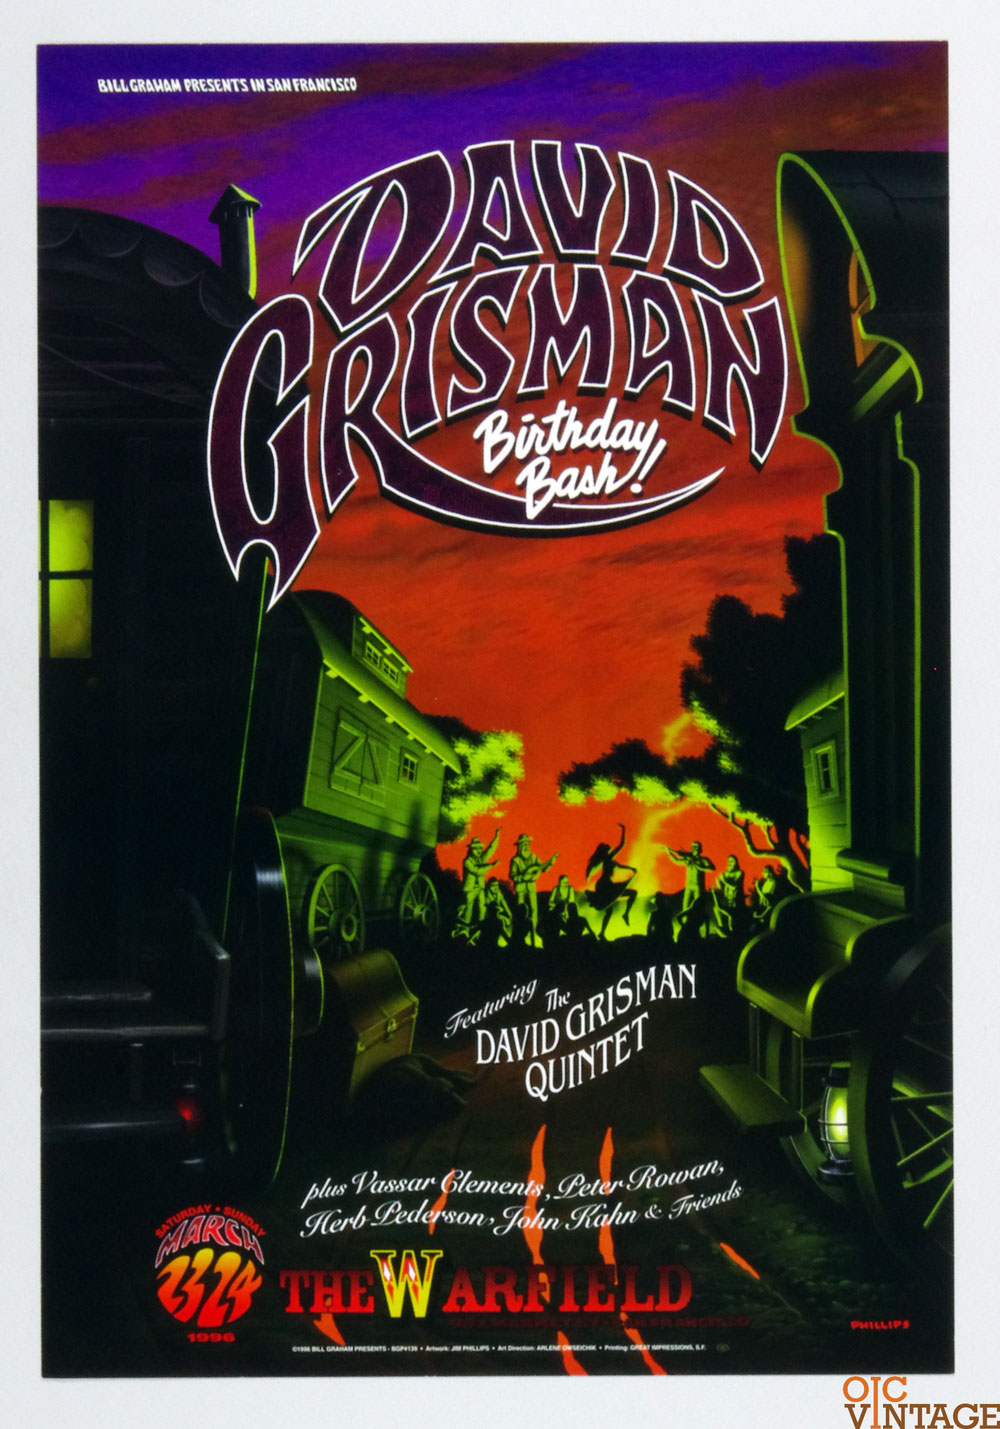 David Grisman Poster 1996 Mar 23 The Warfield Theatre San Francisco BGP 139